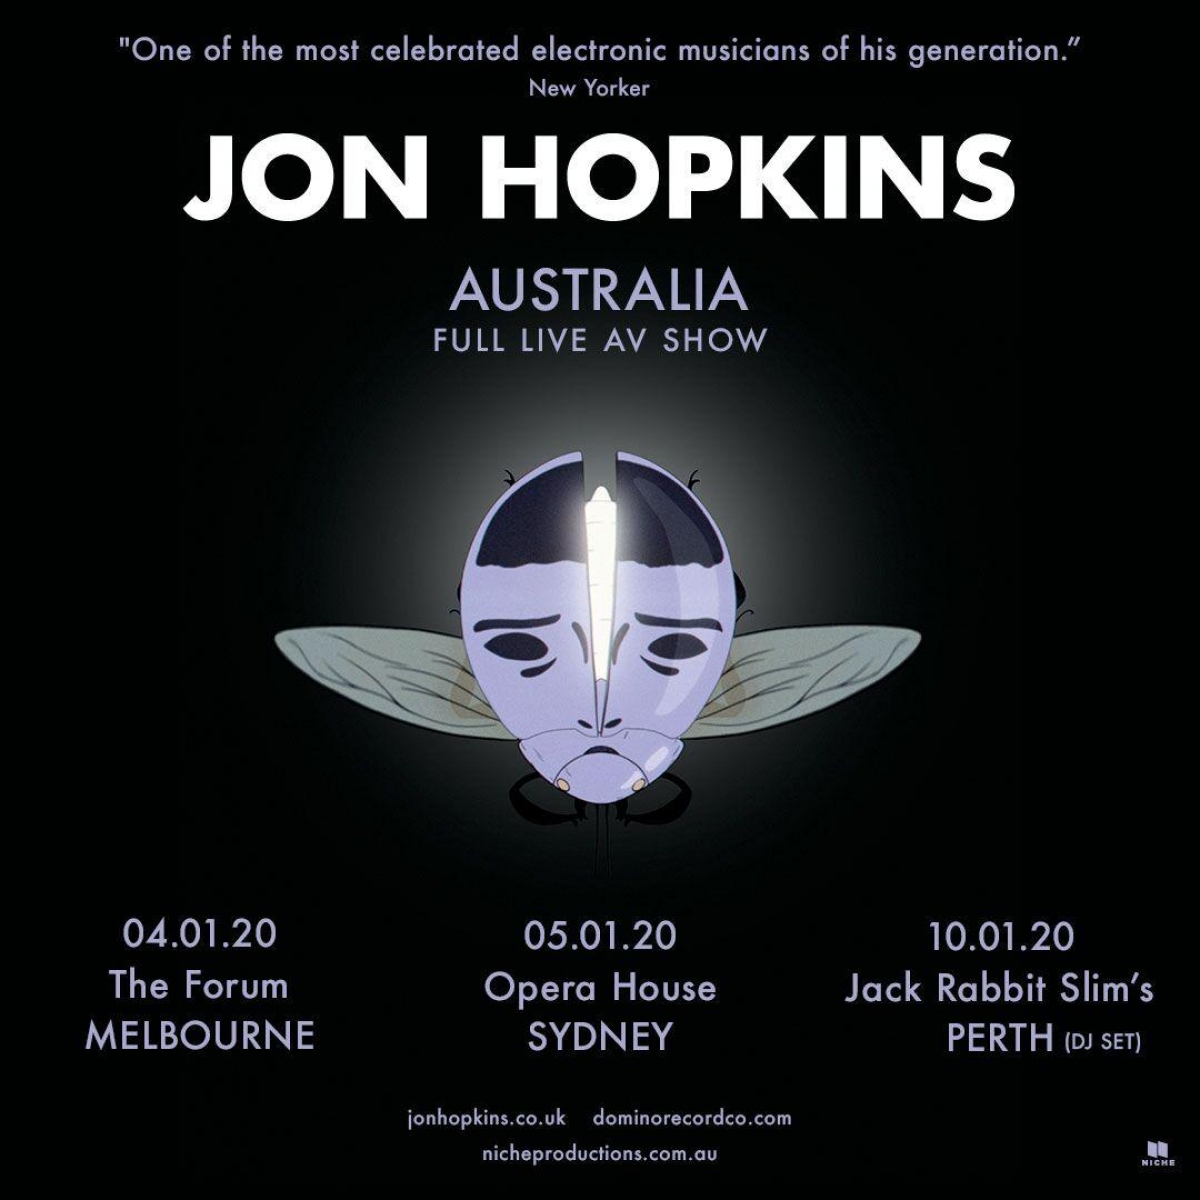 Australian tour dates - January 2020